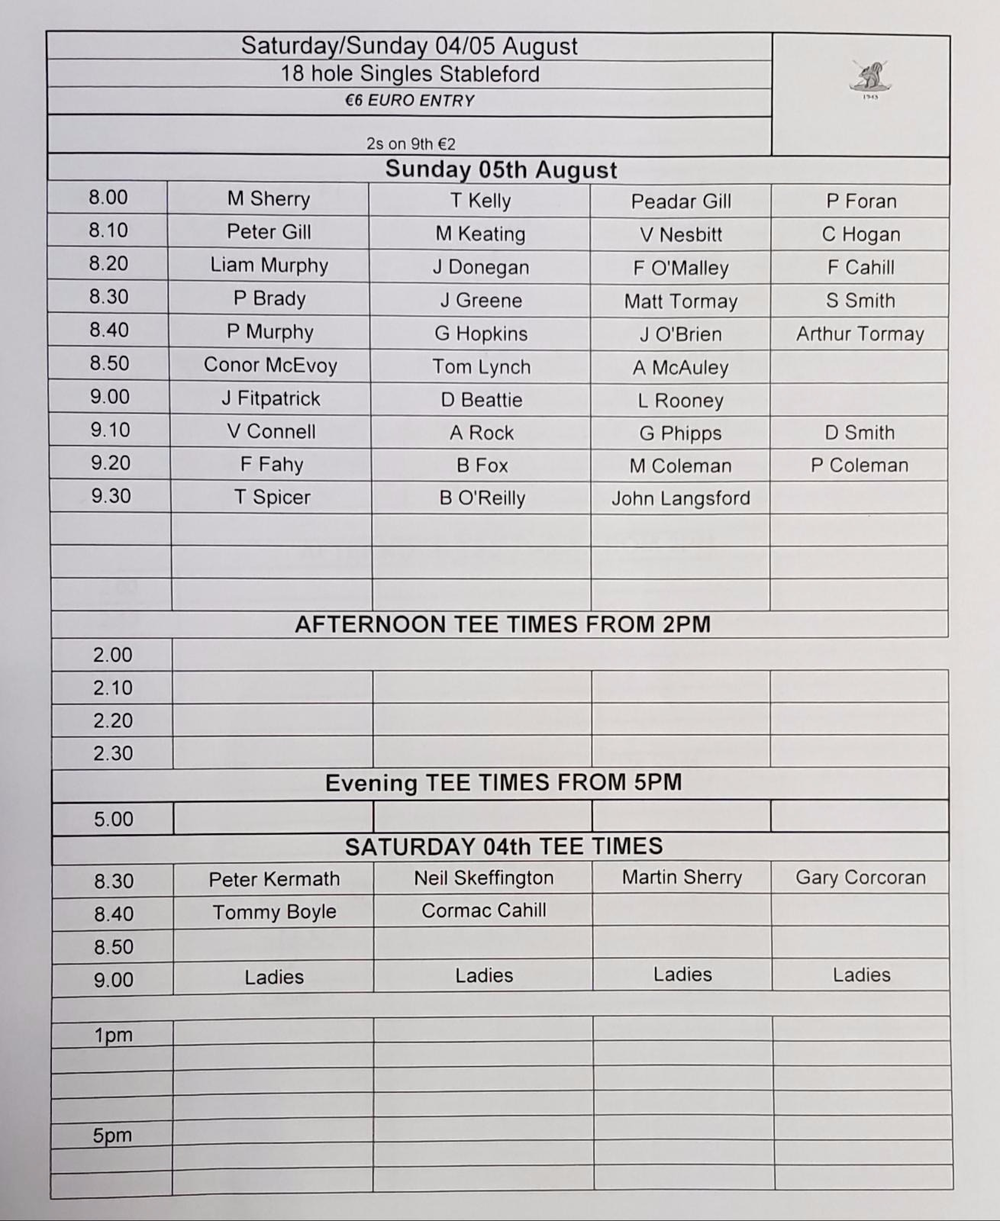 Timesheet August 04-05.png